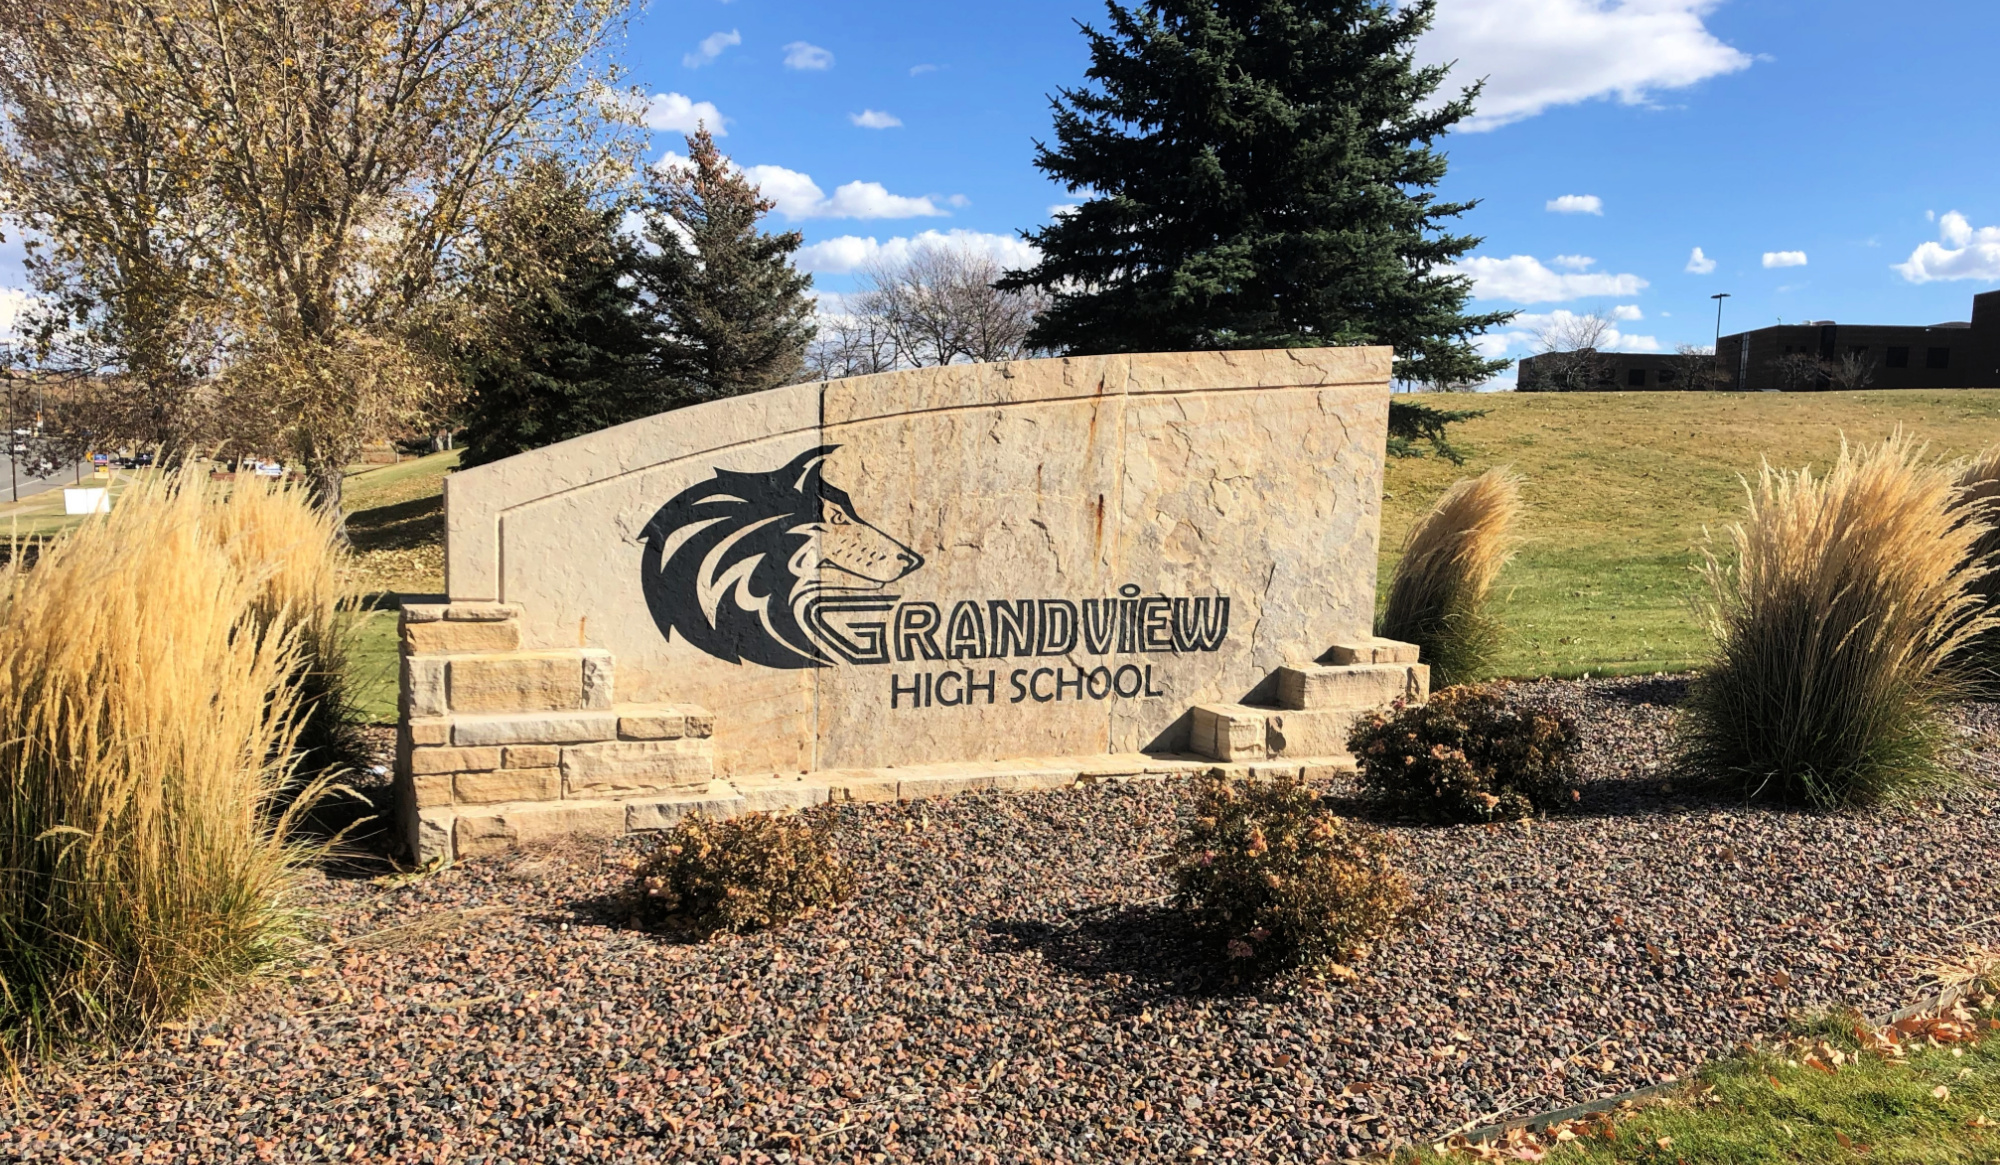 Grandview High School Sign